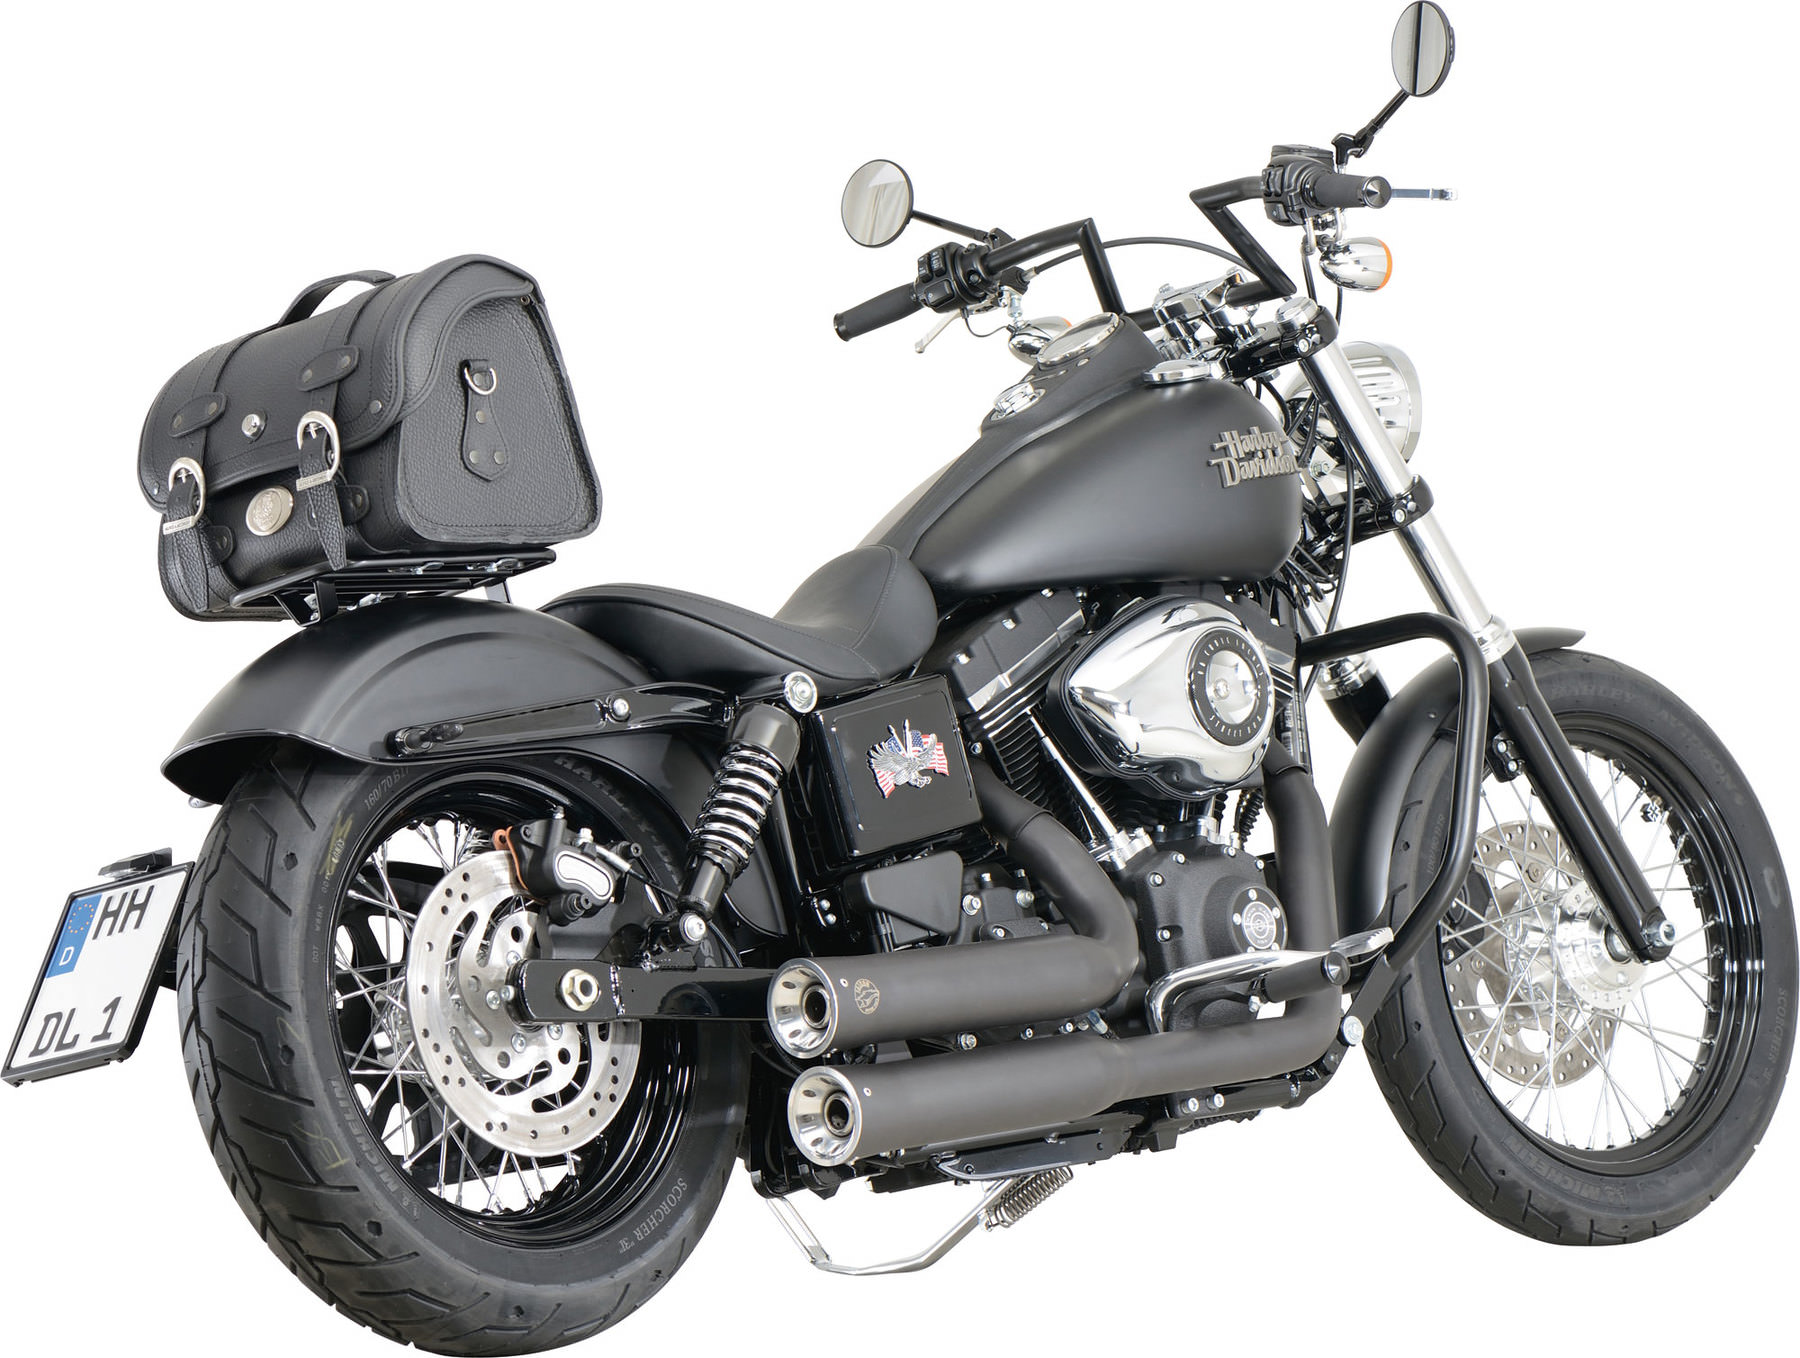 Buy Falcon Double Groove Complete Exhaust Full Exhaust System Louis Motorcycle Clothing And Technology